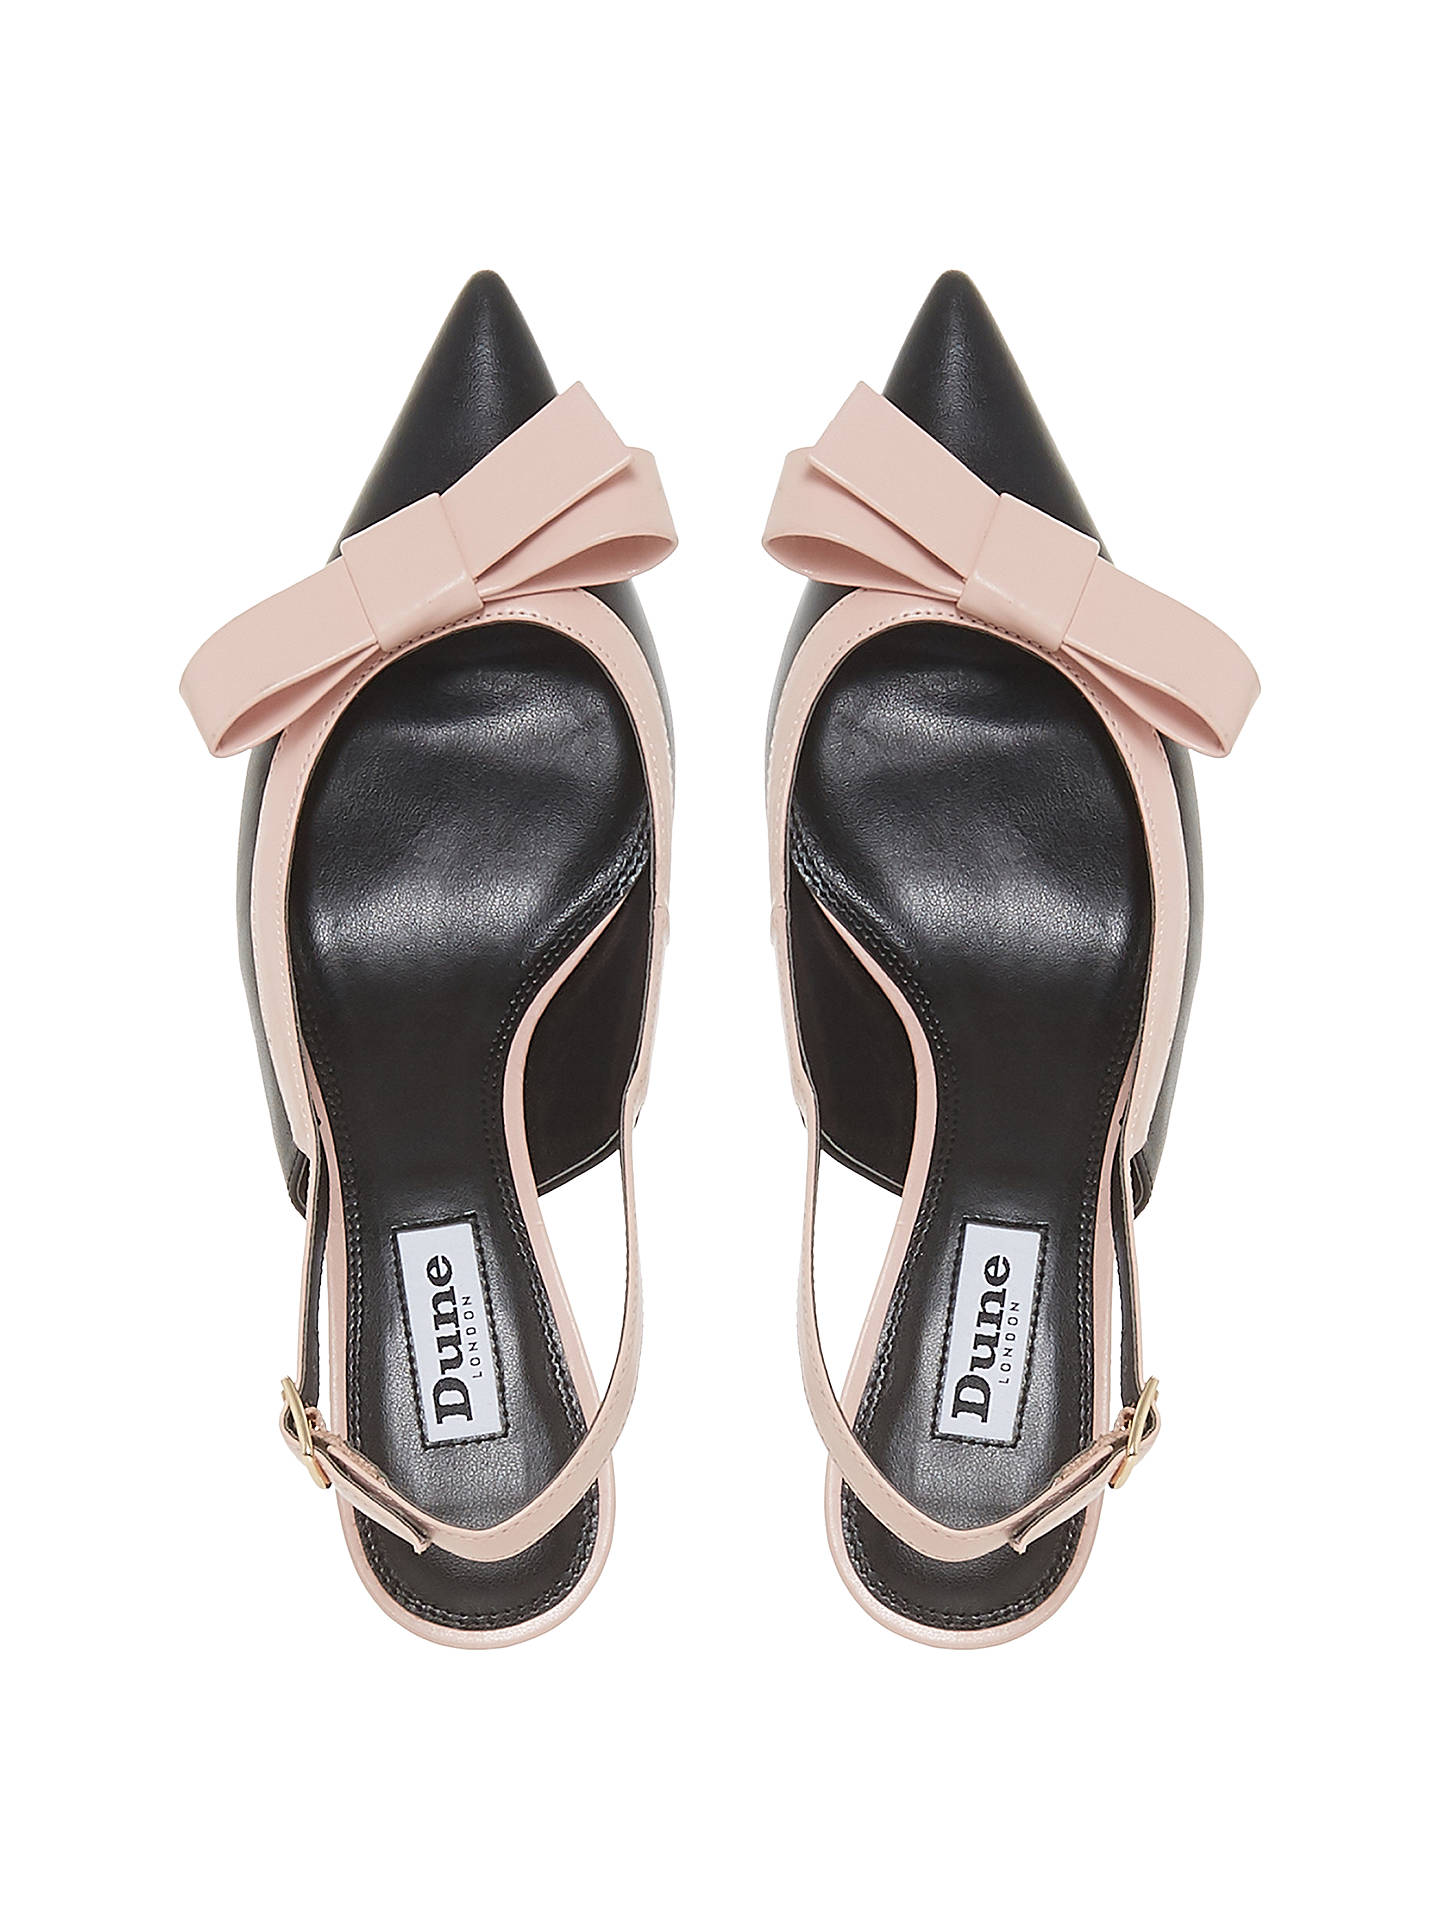 05f61964851f6 ... Buy Dune Clemmiee Kitten Heel Slingback Court Shoes, Black/Pink  Leather, 6 Online ...